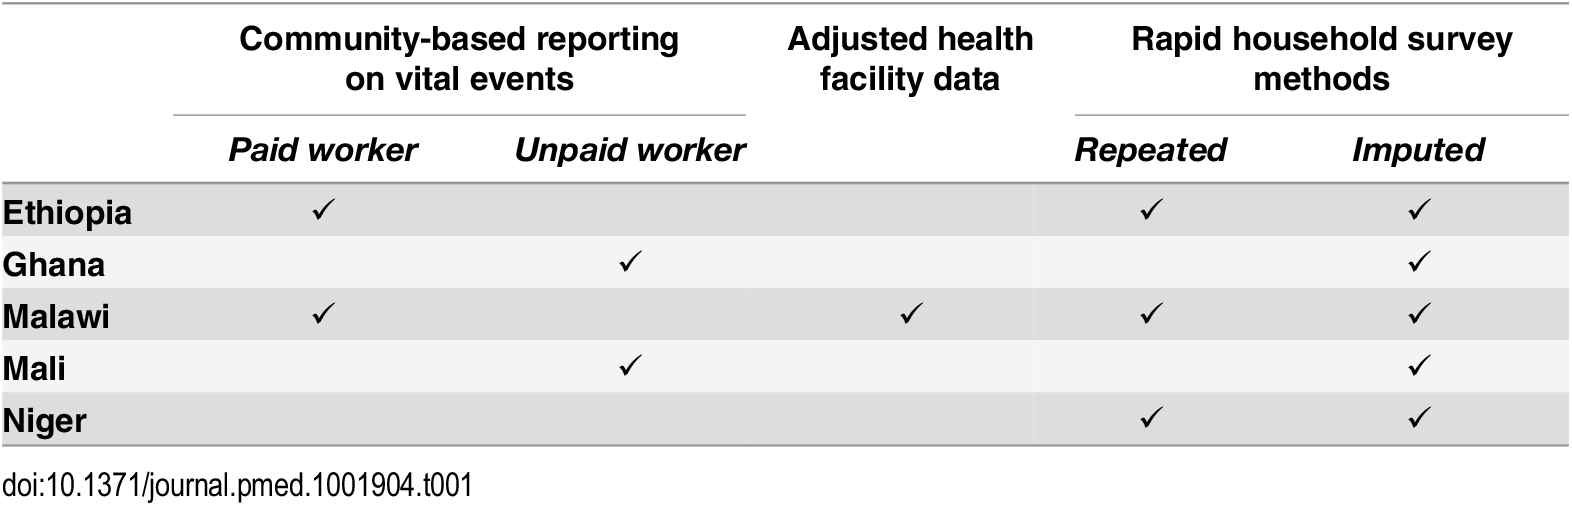 Real-time mortality monitoring (RMM) approaches tested, by country.